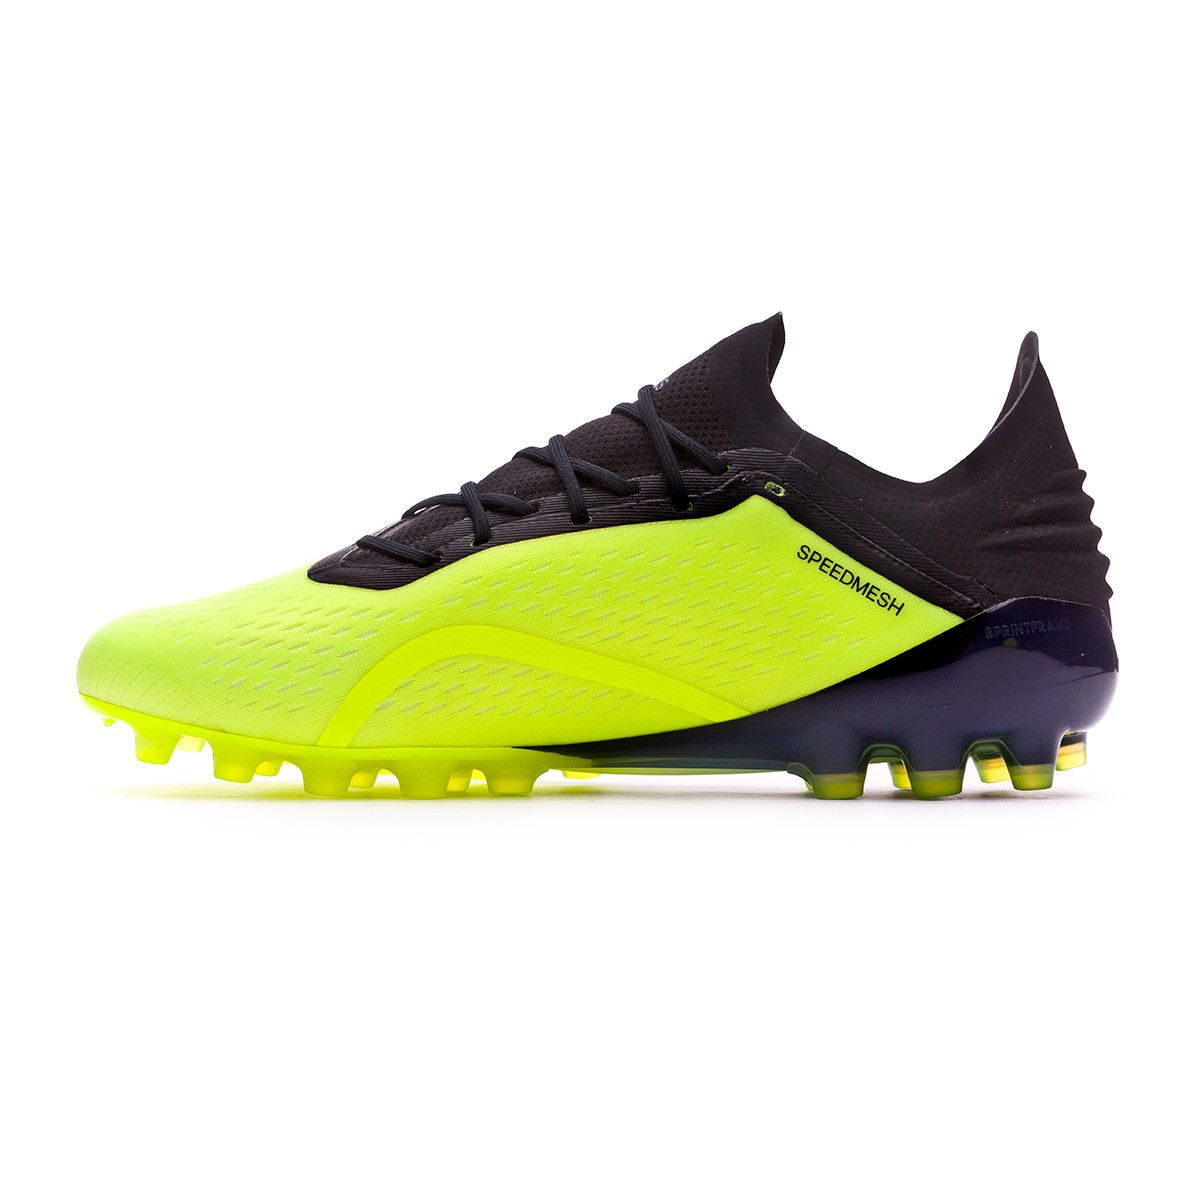 sports shoes 63d8e cfff9 Football Boots adidas X 18.1 AG Solar yellow-Core black-White - Football  store Fútbol Emotion